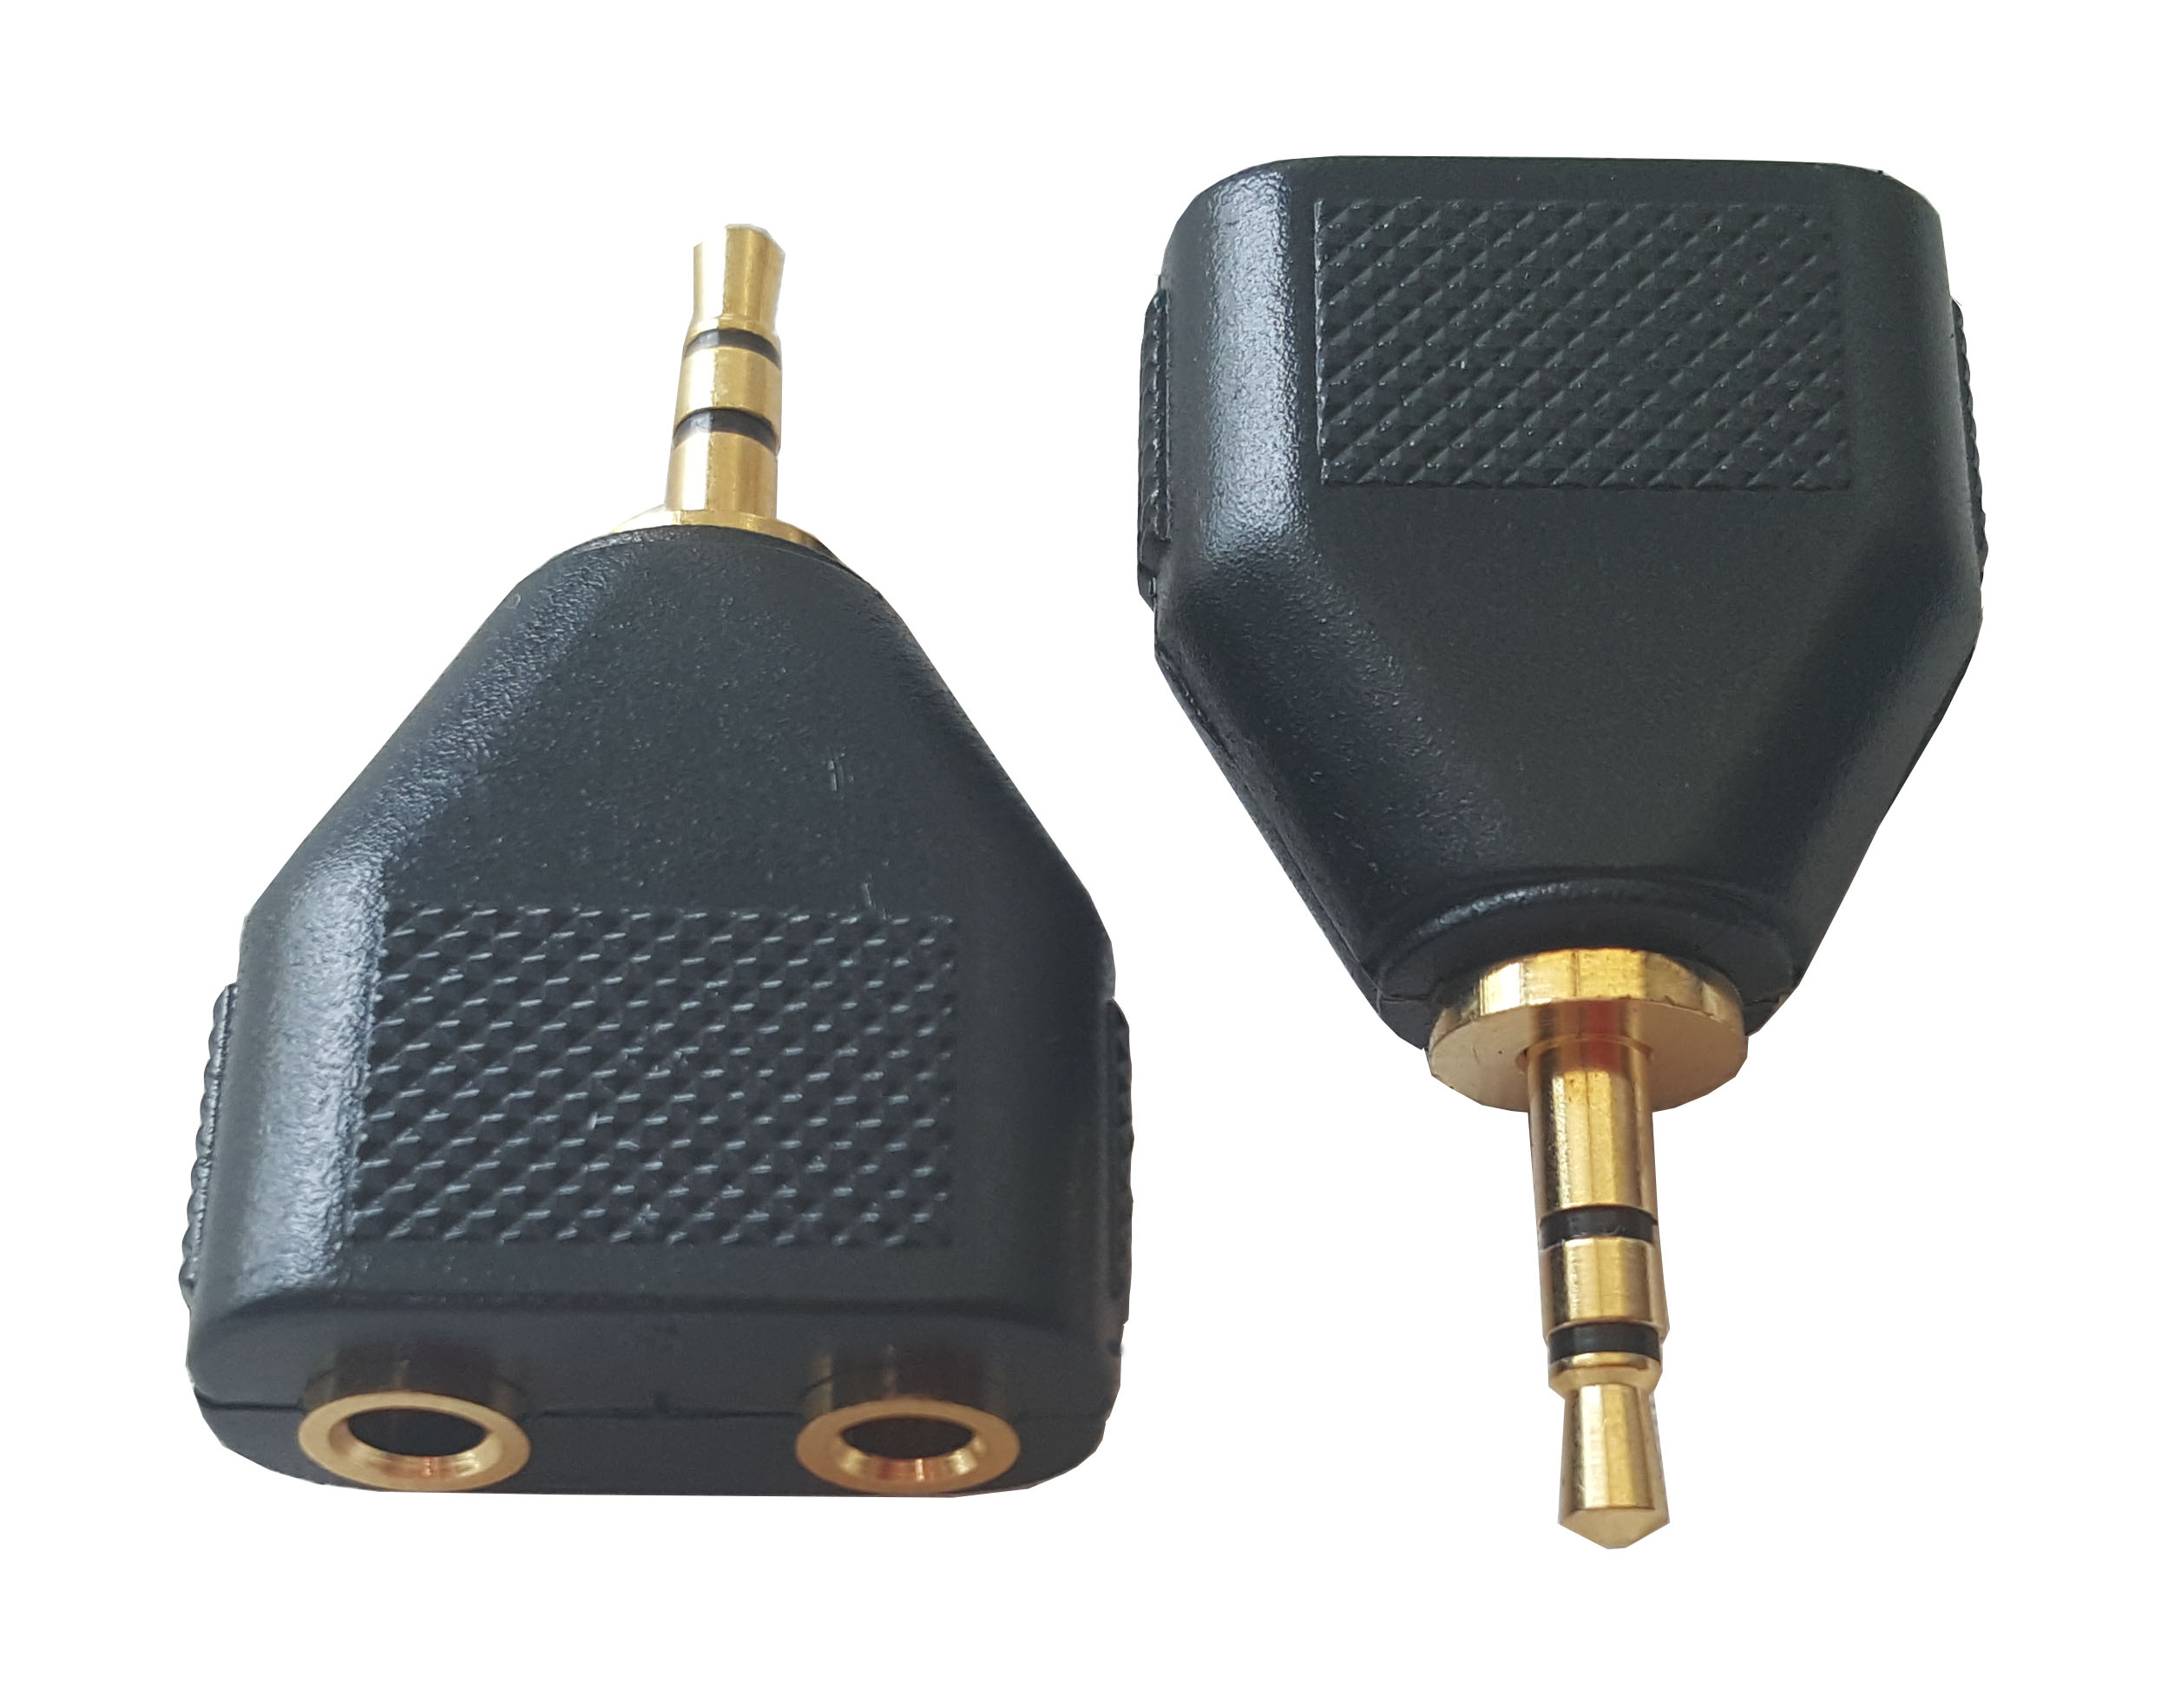 audio splitter made in Taiwan